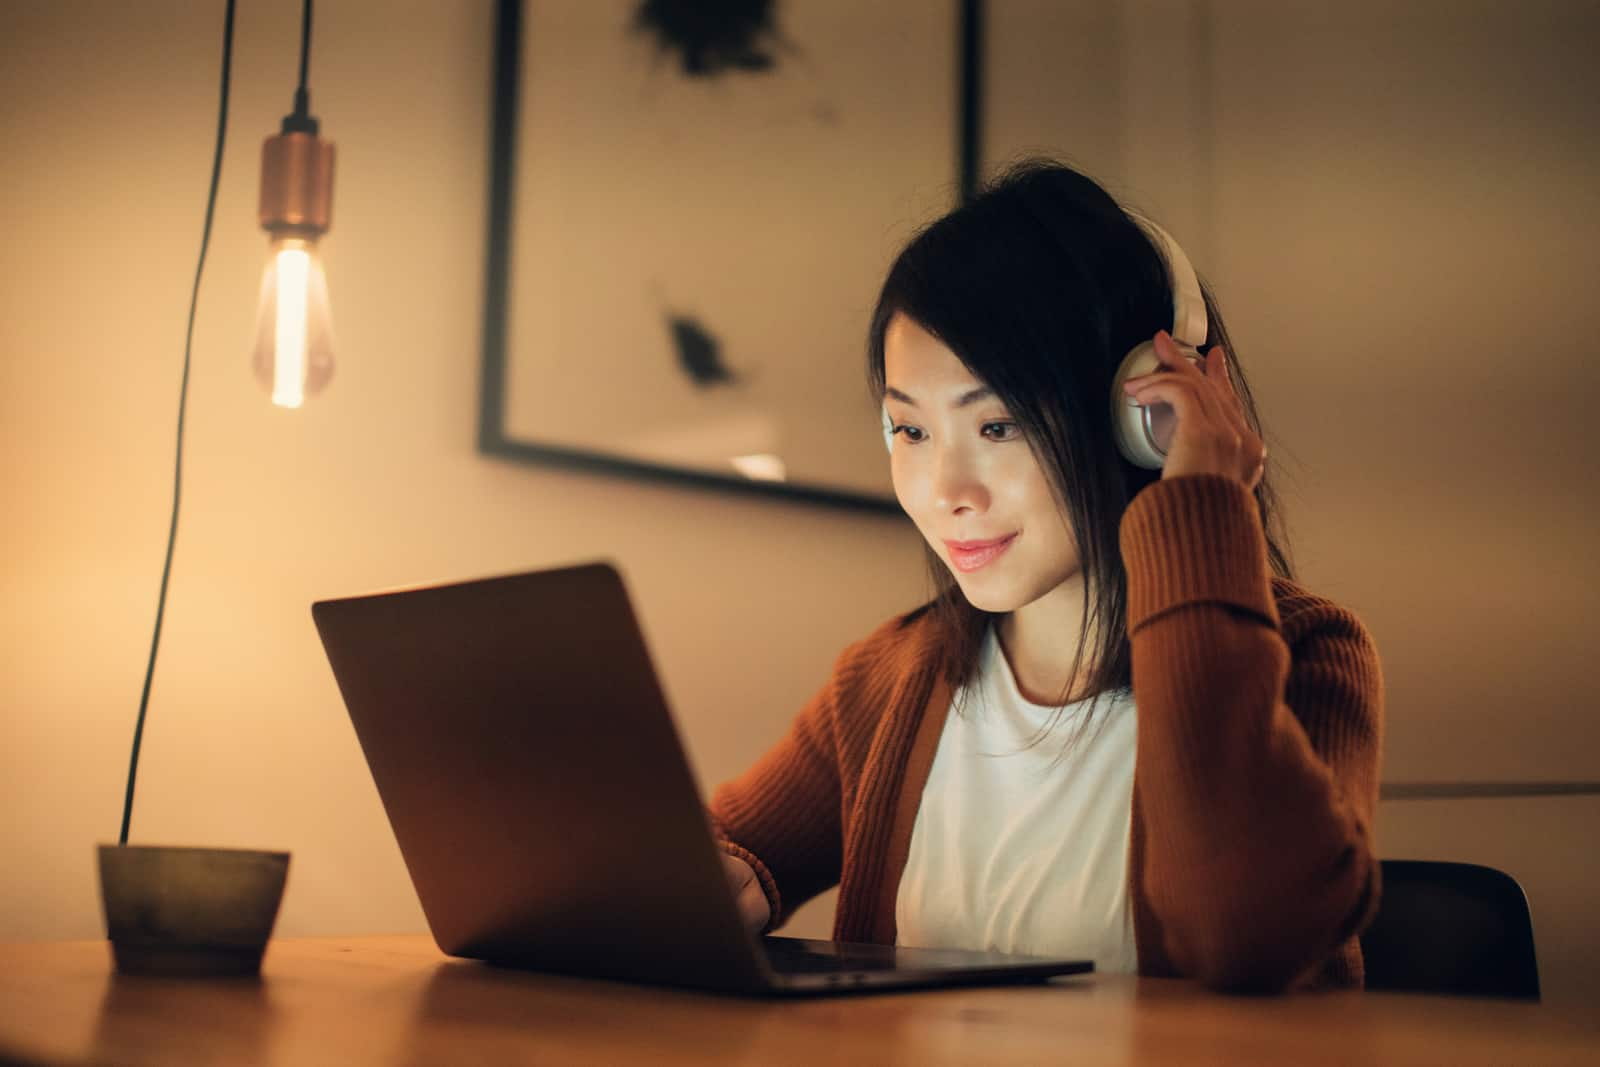 Medium shot of a young woman wearing headphones, studying online with laptop at home in the evening.